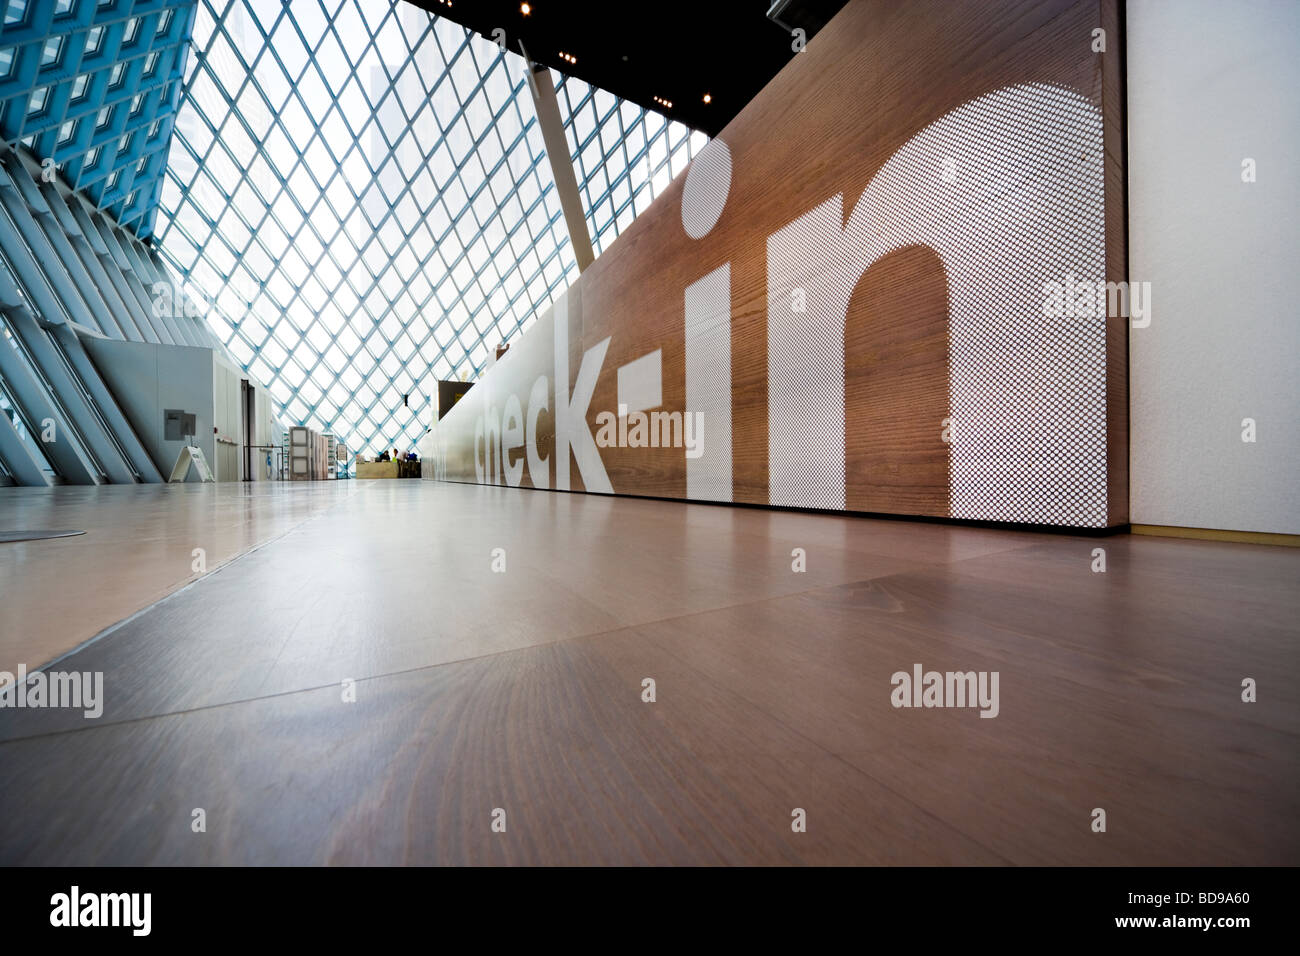 https://c7.alamy.com/comp/BD9A60/spl-seattle-central-public-library-check-in-desk-at-the-third-level-BD9A60.jpg